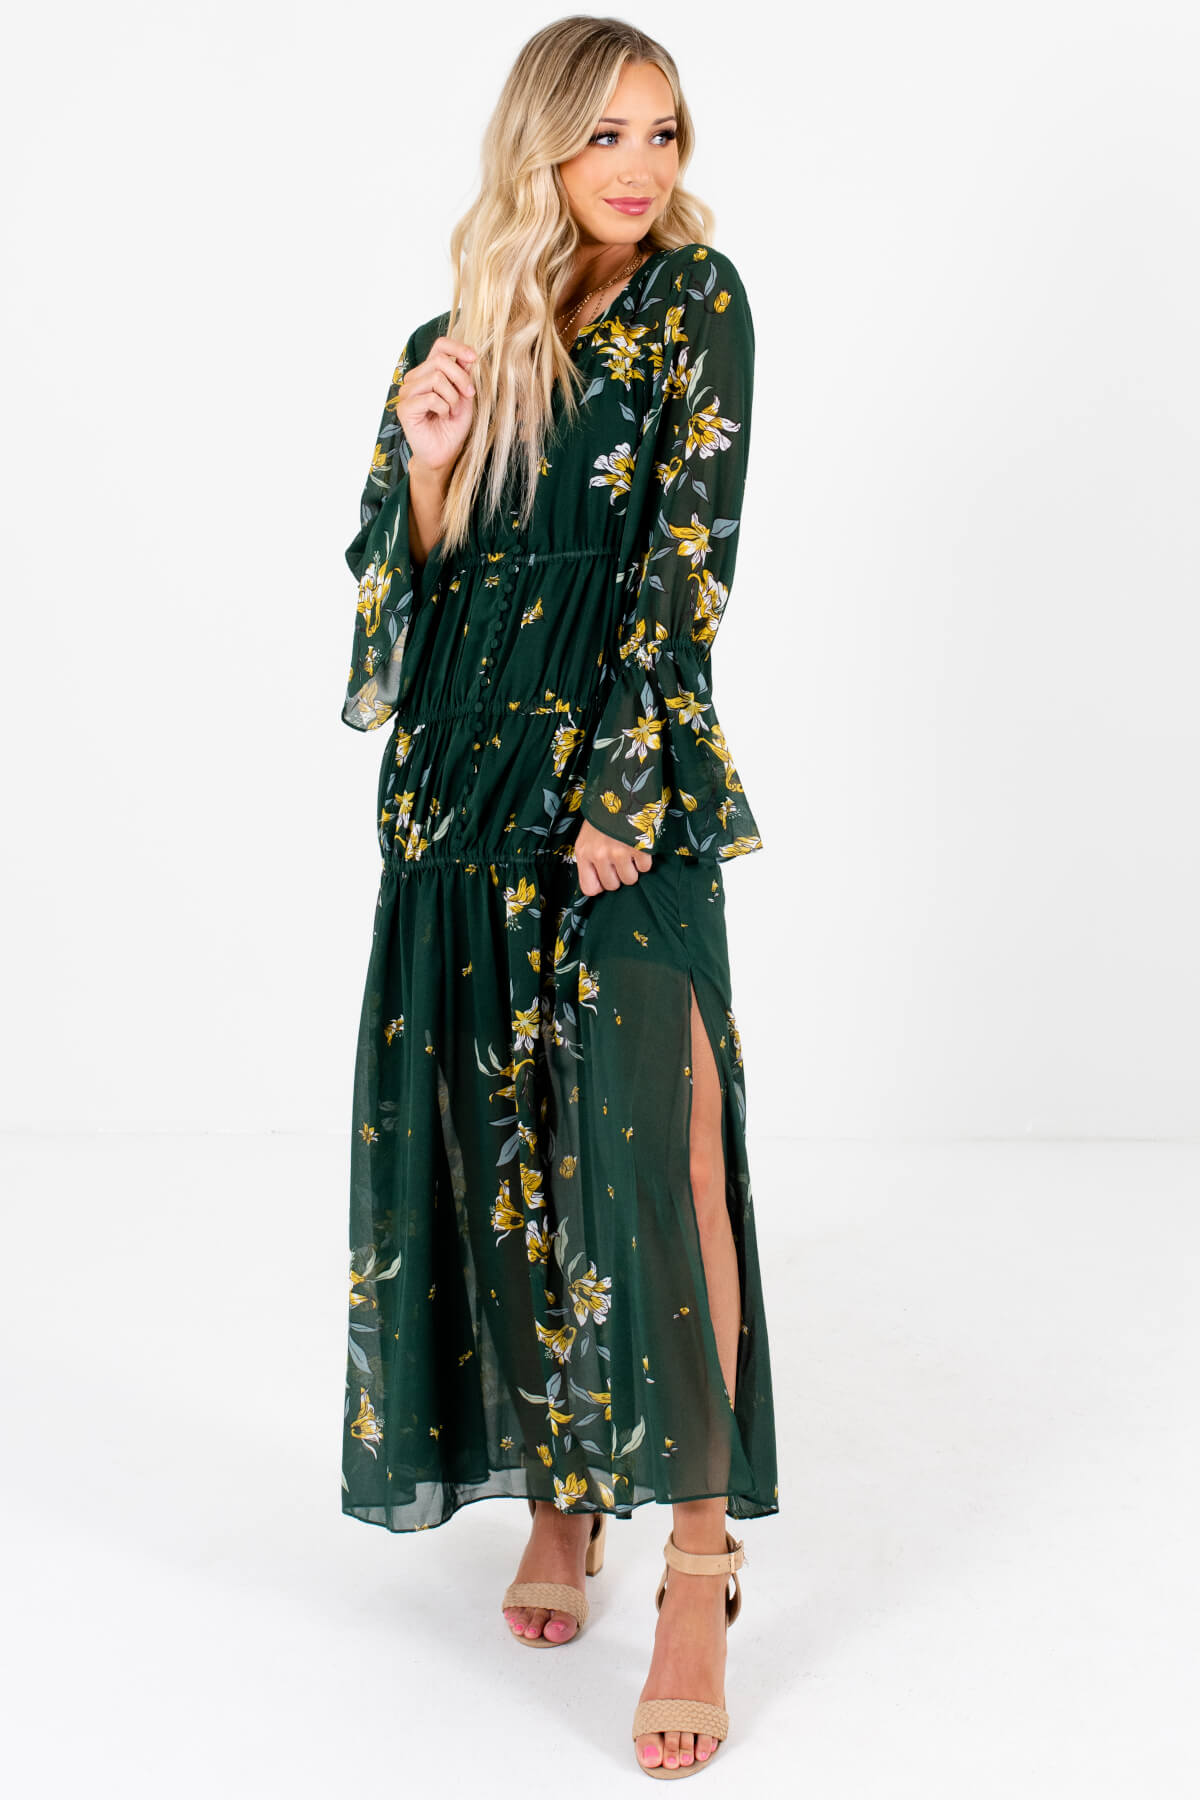 Dark Green Multicolored Floral Boutique Maxi Dresses for Women